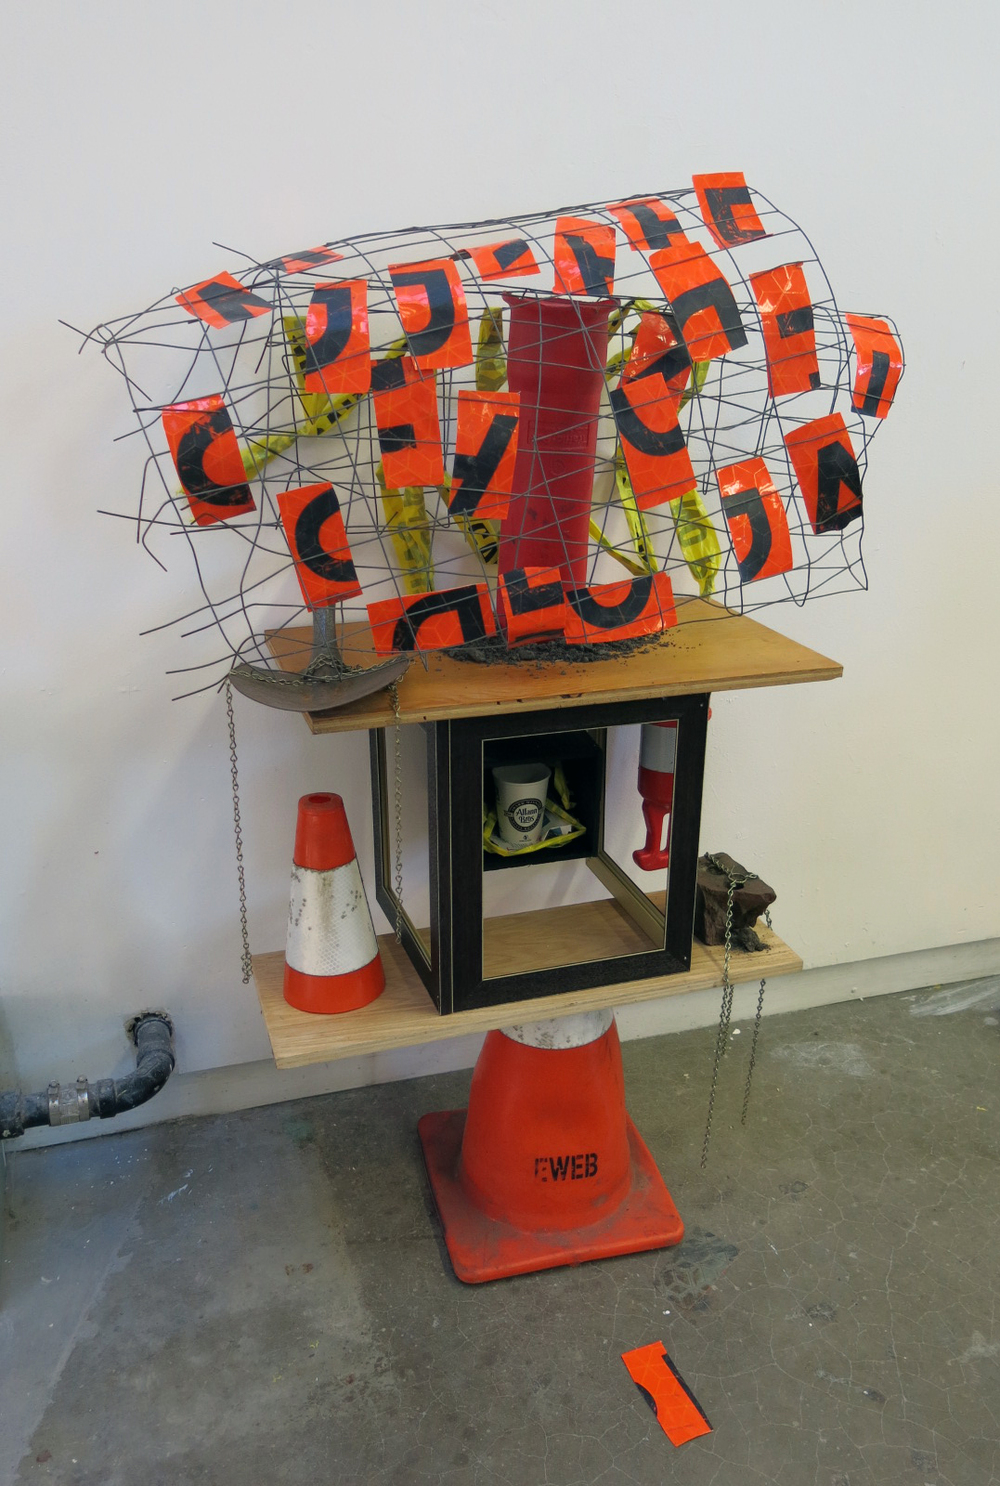 Sculpture 1, 288 - Mixed Media: Construction project and site exploration (2014)